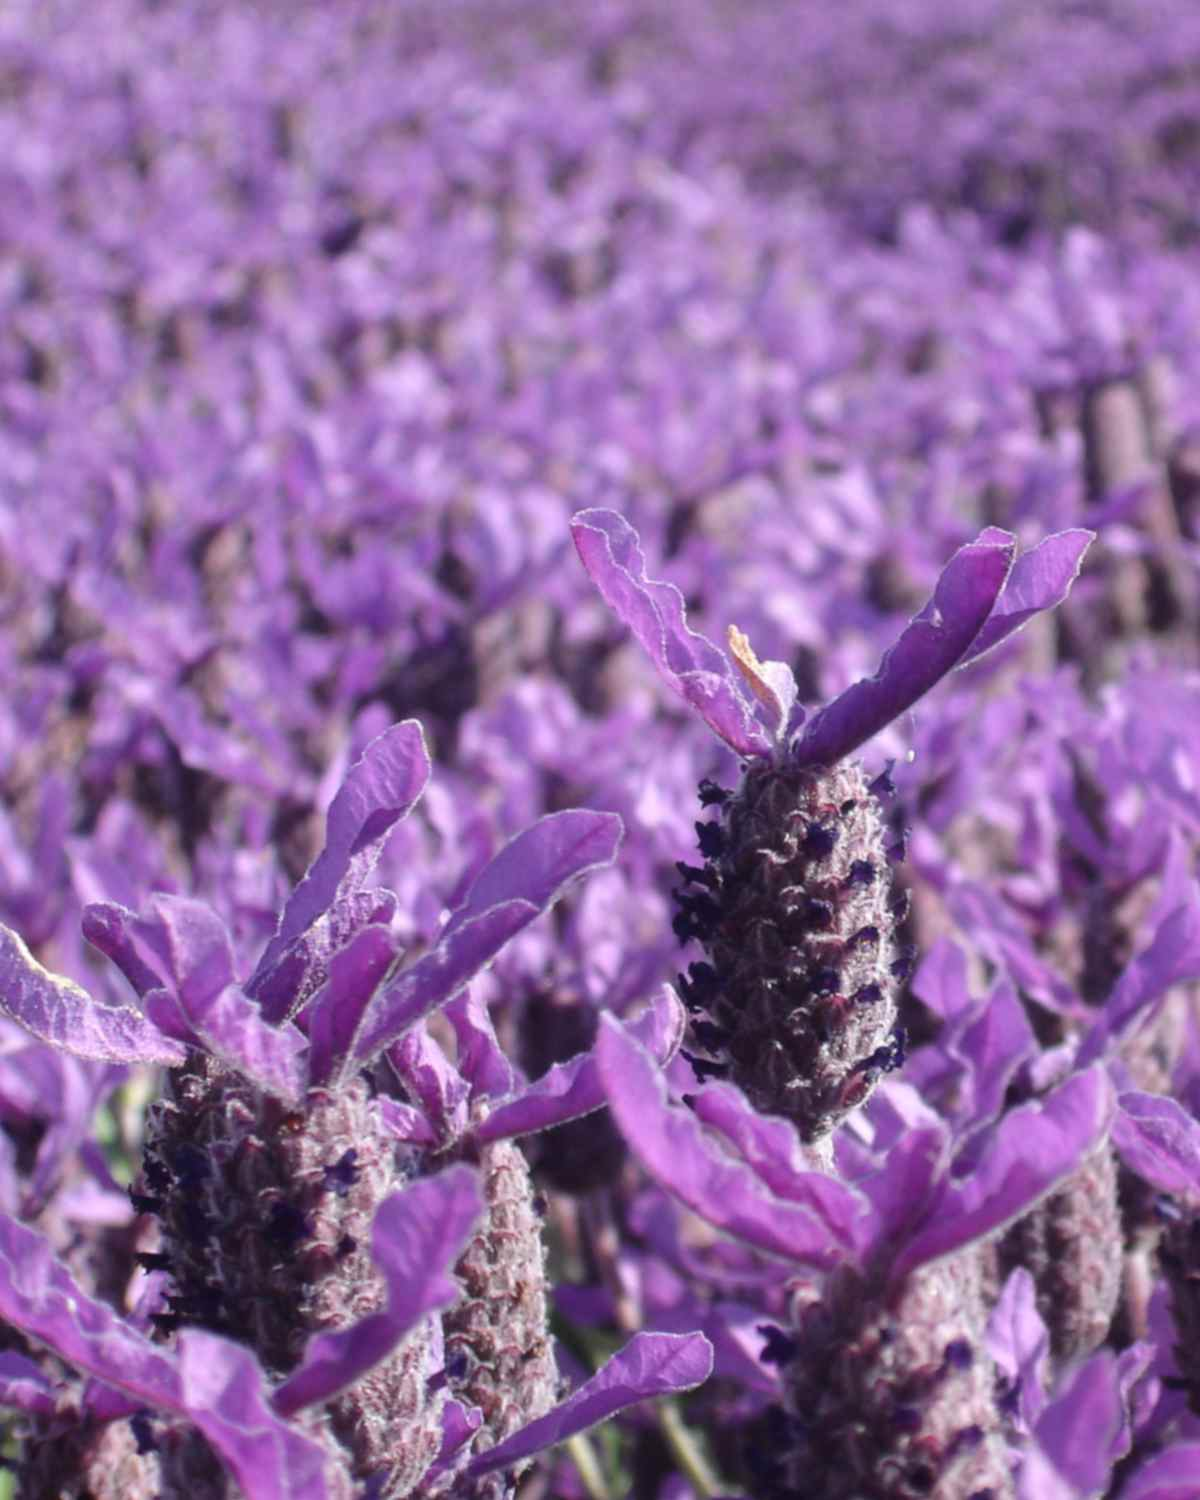 A field completely covered in purple Lavandula stoechas flowers.